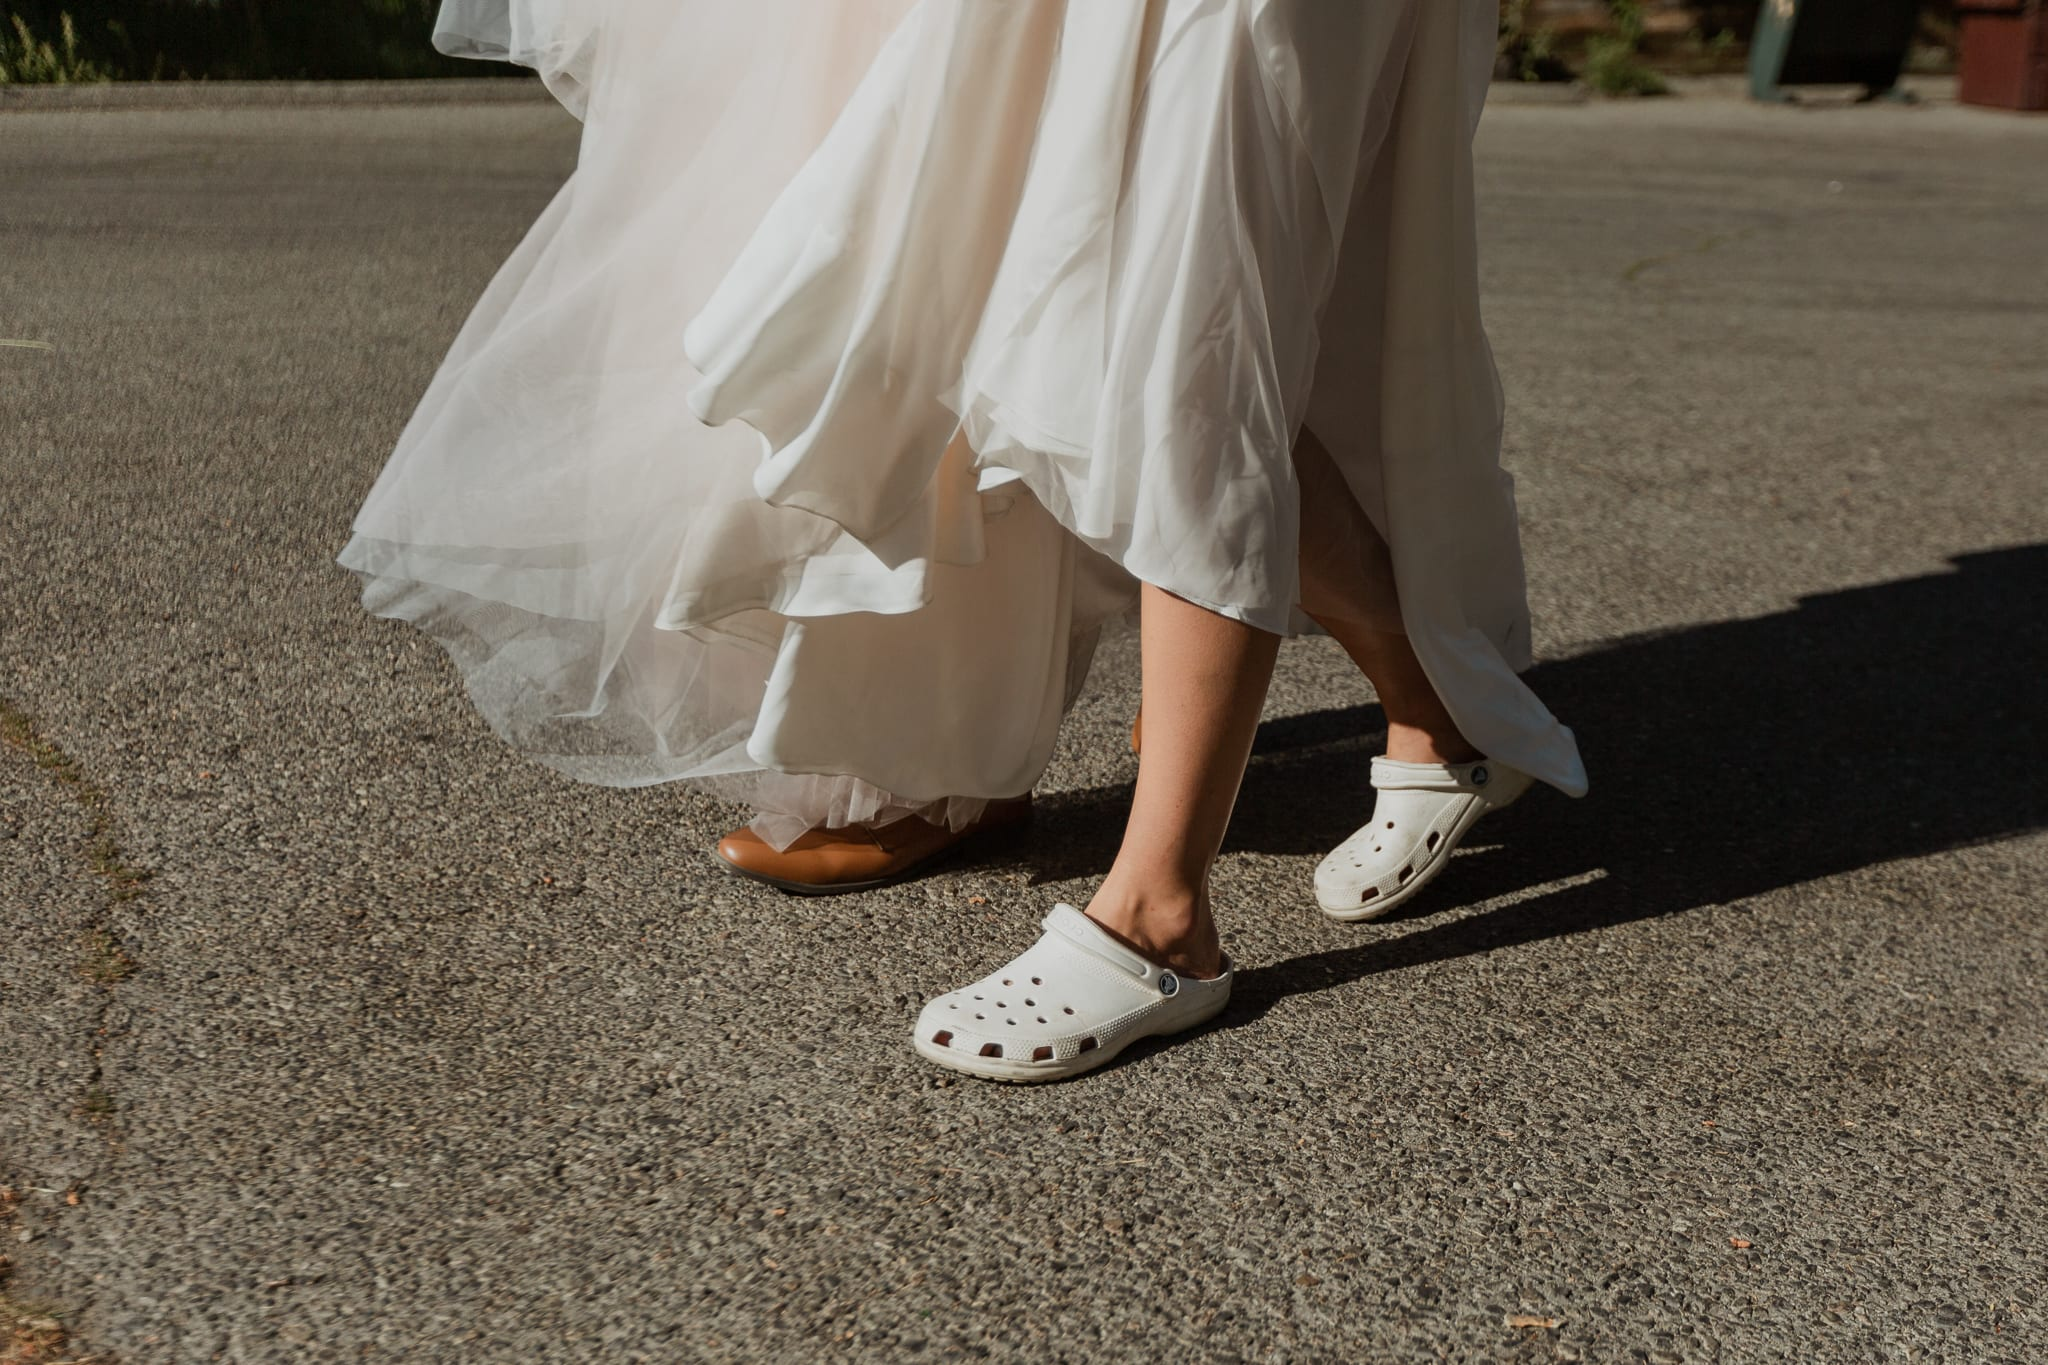 Haylee walks in her white crocs and wedding dress to go see Tyler for the first time on their elopement day.